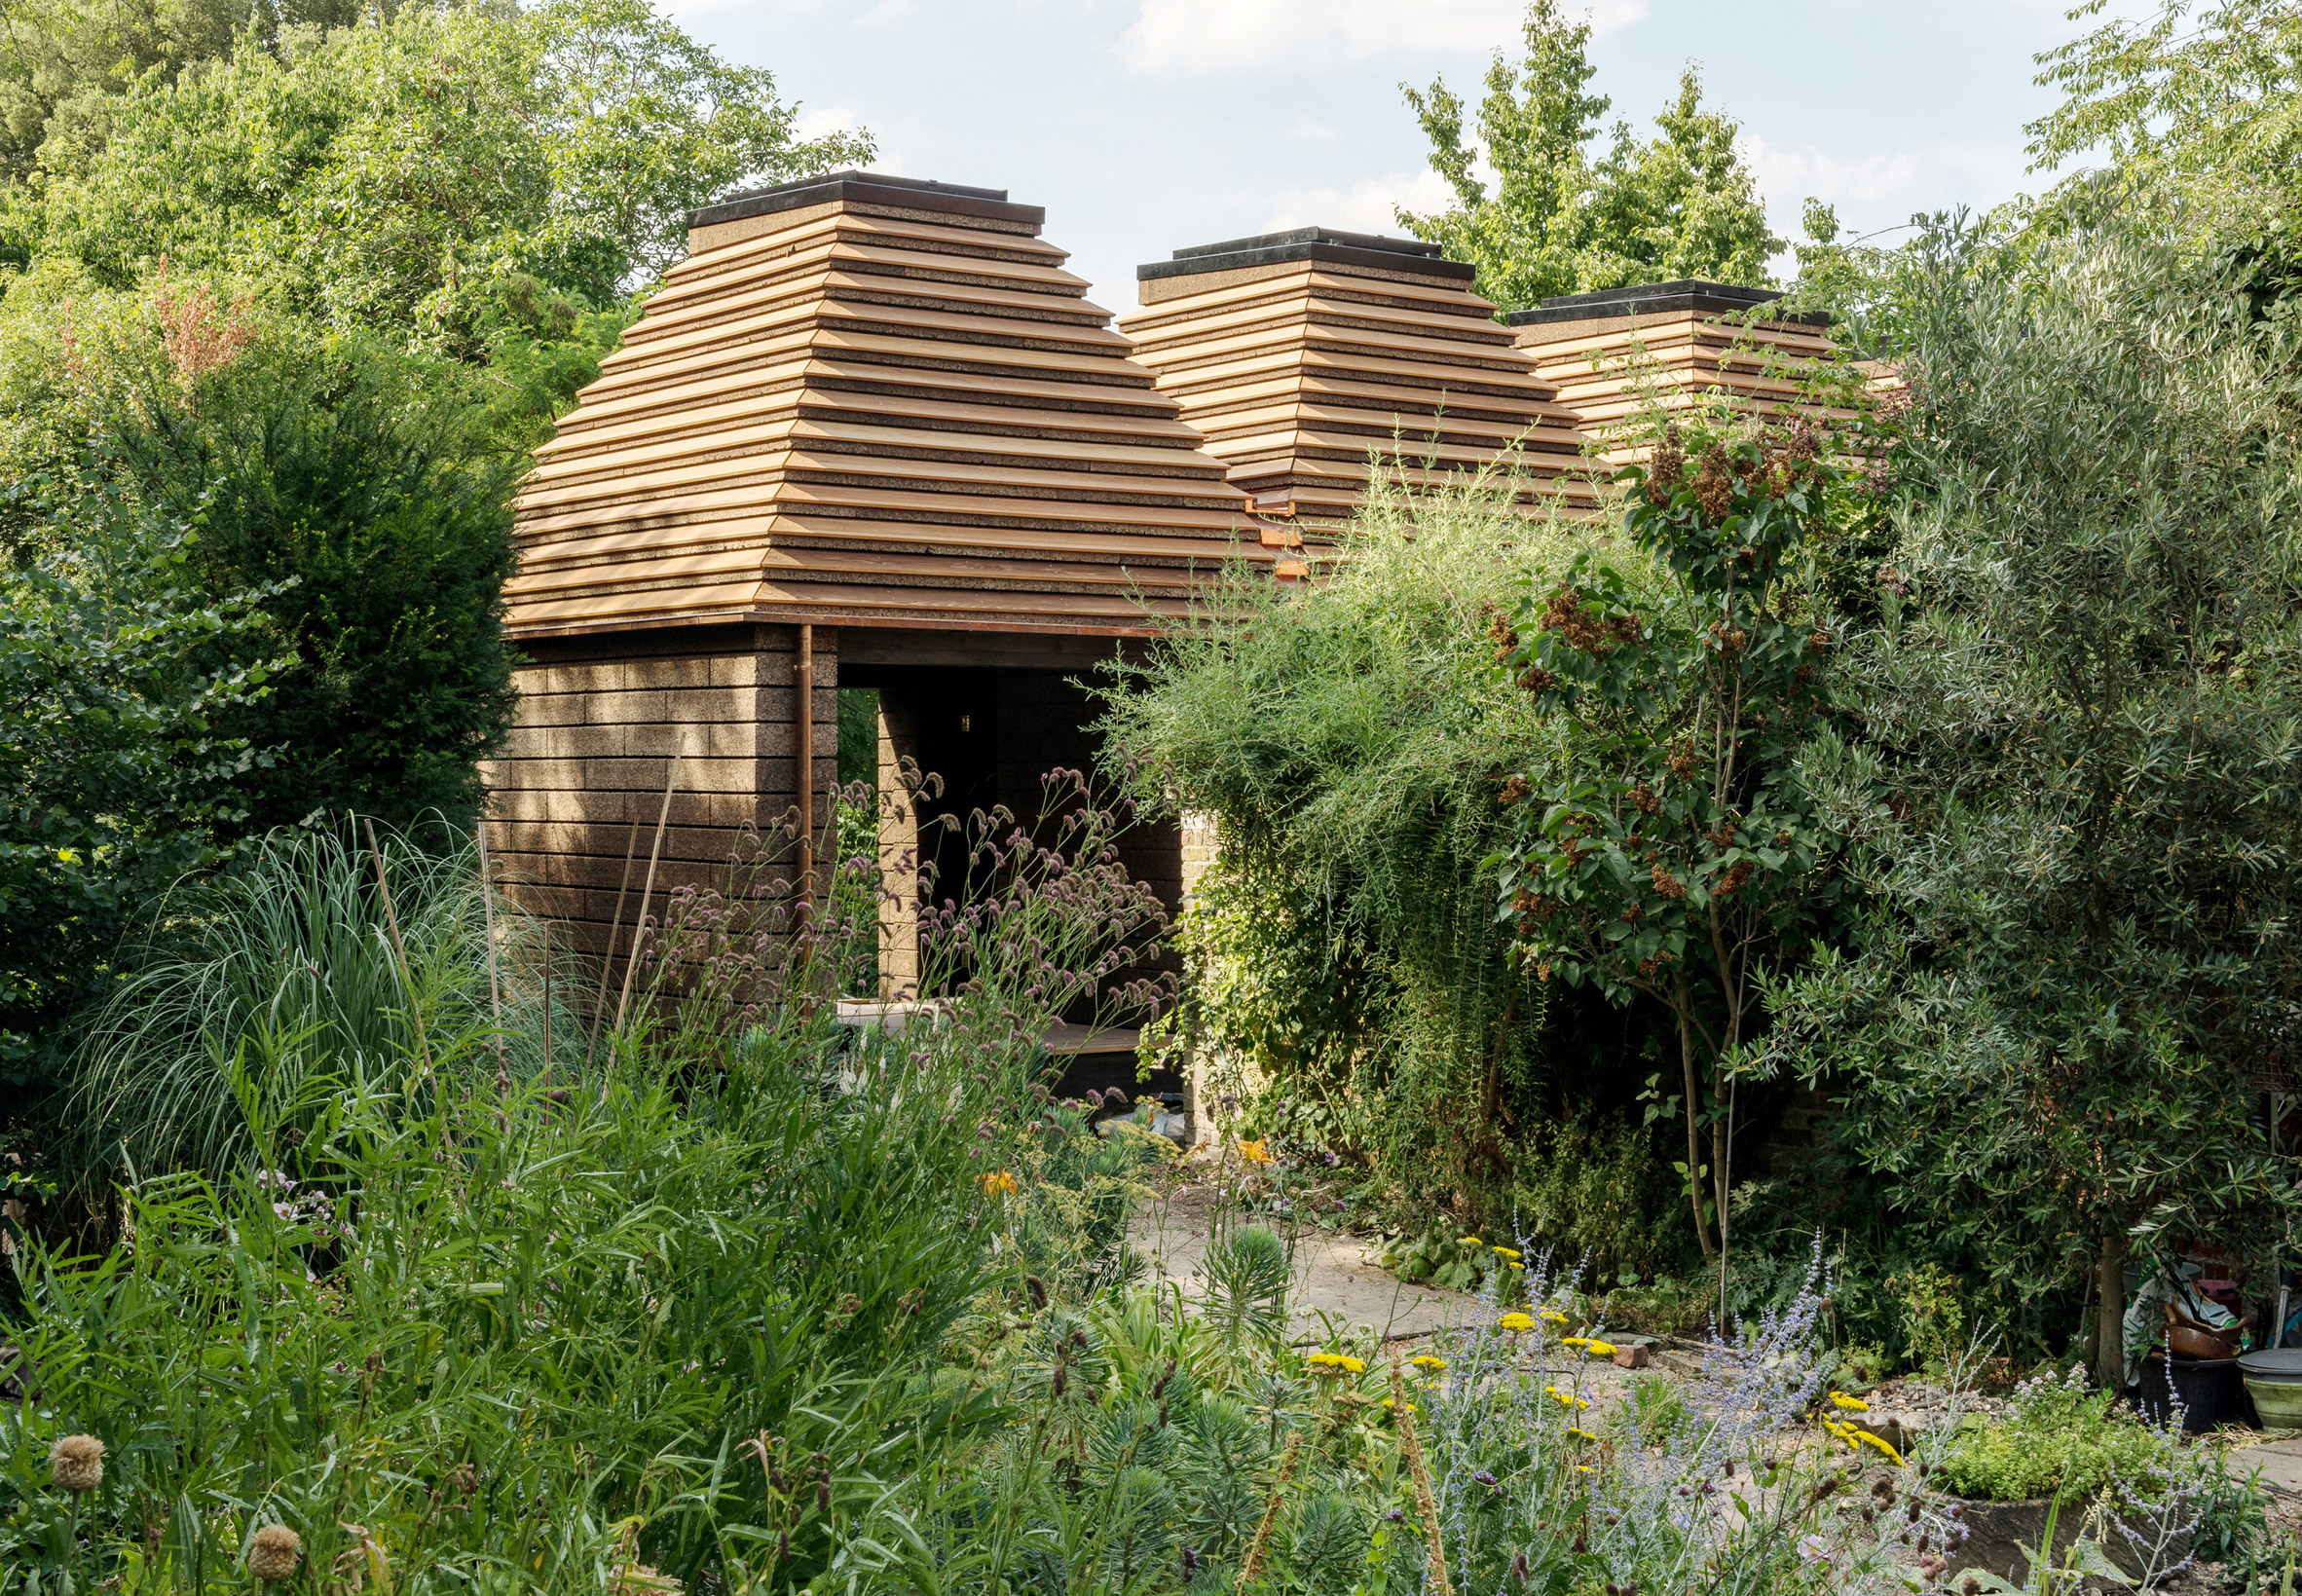 Stirling Prize-shortlisted Cork House by Matthew Barnett Howland with Dido Milne and Oliver Wilton in Berkshire, England